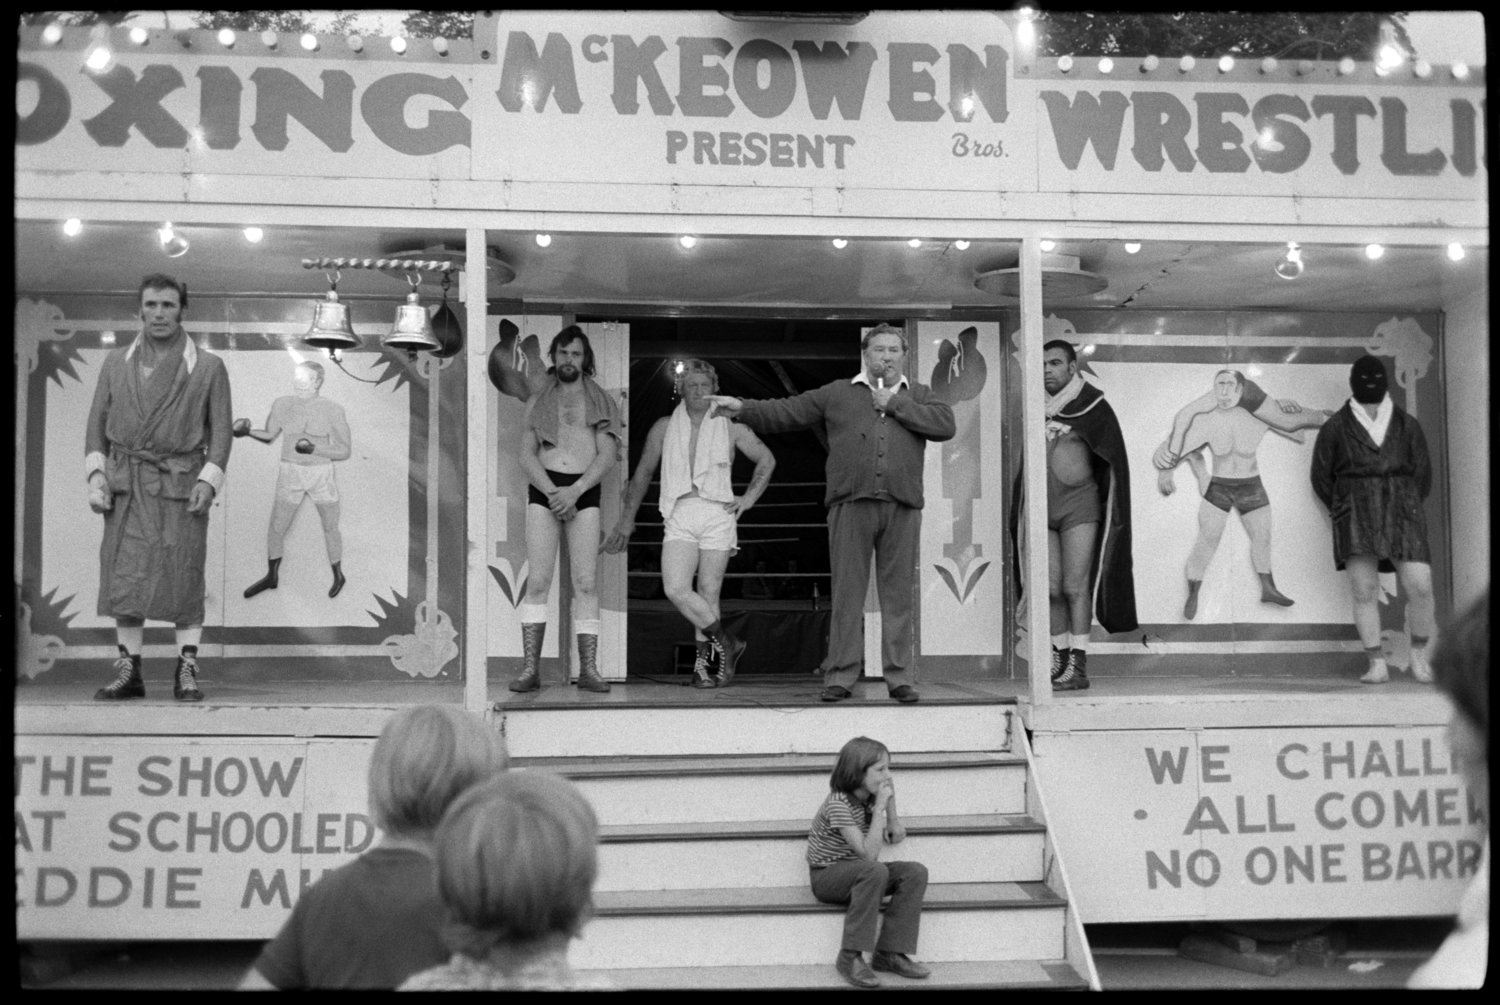 Bideford Regatta, Boxing, Bideford, 9th August, 1973. Documentary photograph by James Ravilious for the Beaford Archive © Beaford Arts